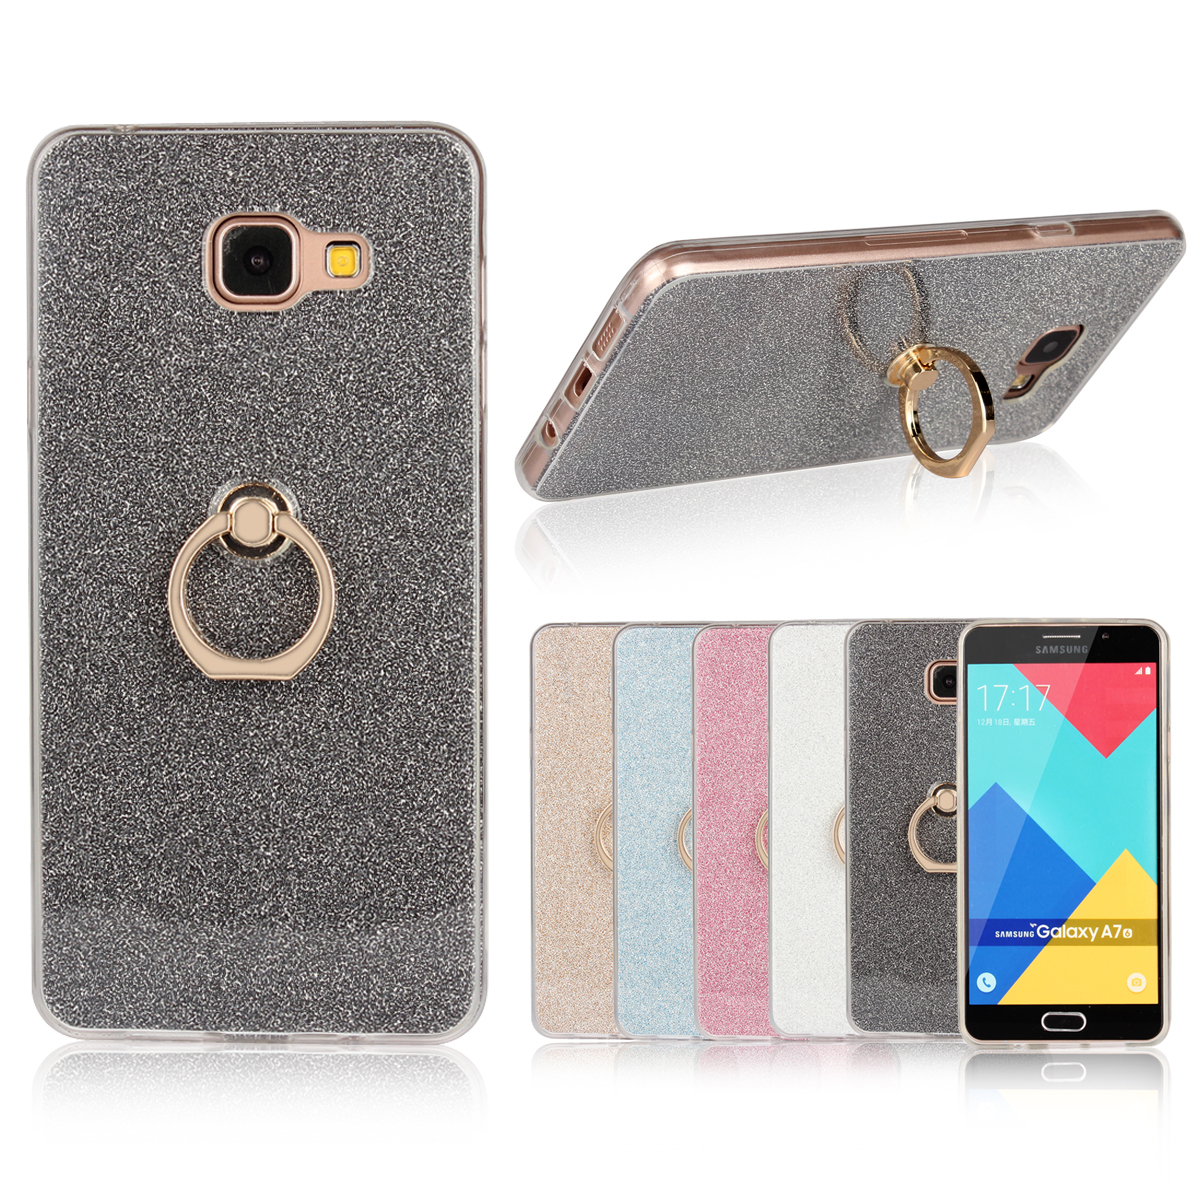 Case for Samsung Galaxy A710 Flash powder Case for Samsung A710 2016 SM-A7100 A7108 A710F/M/FD/Y/K/L/S Finger buckle Phone bag